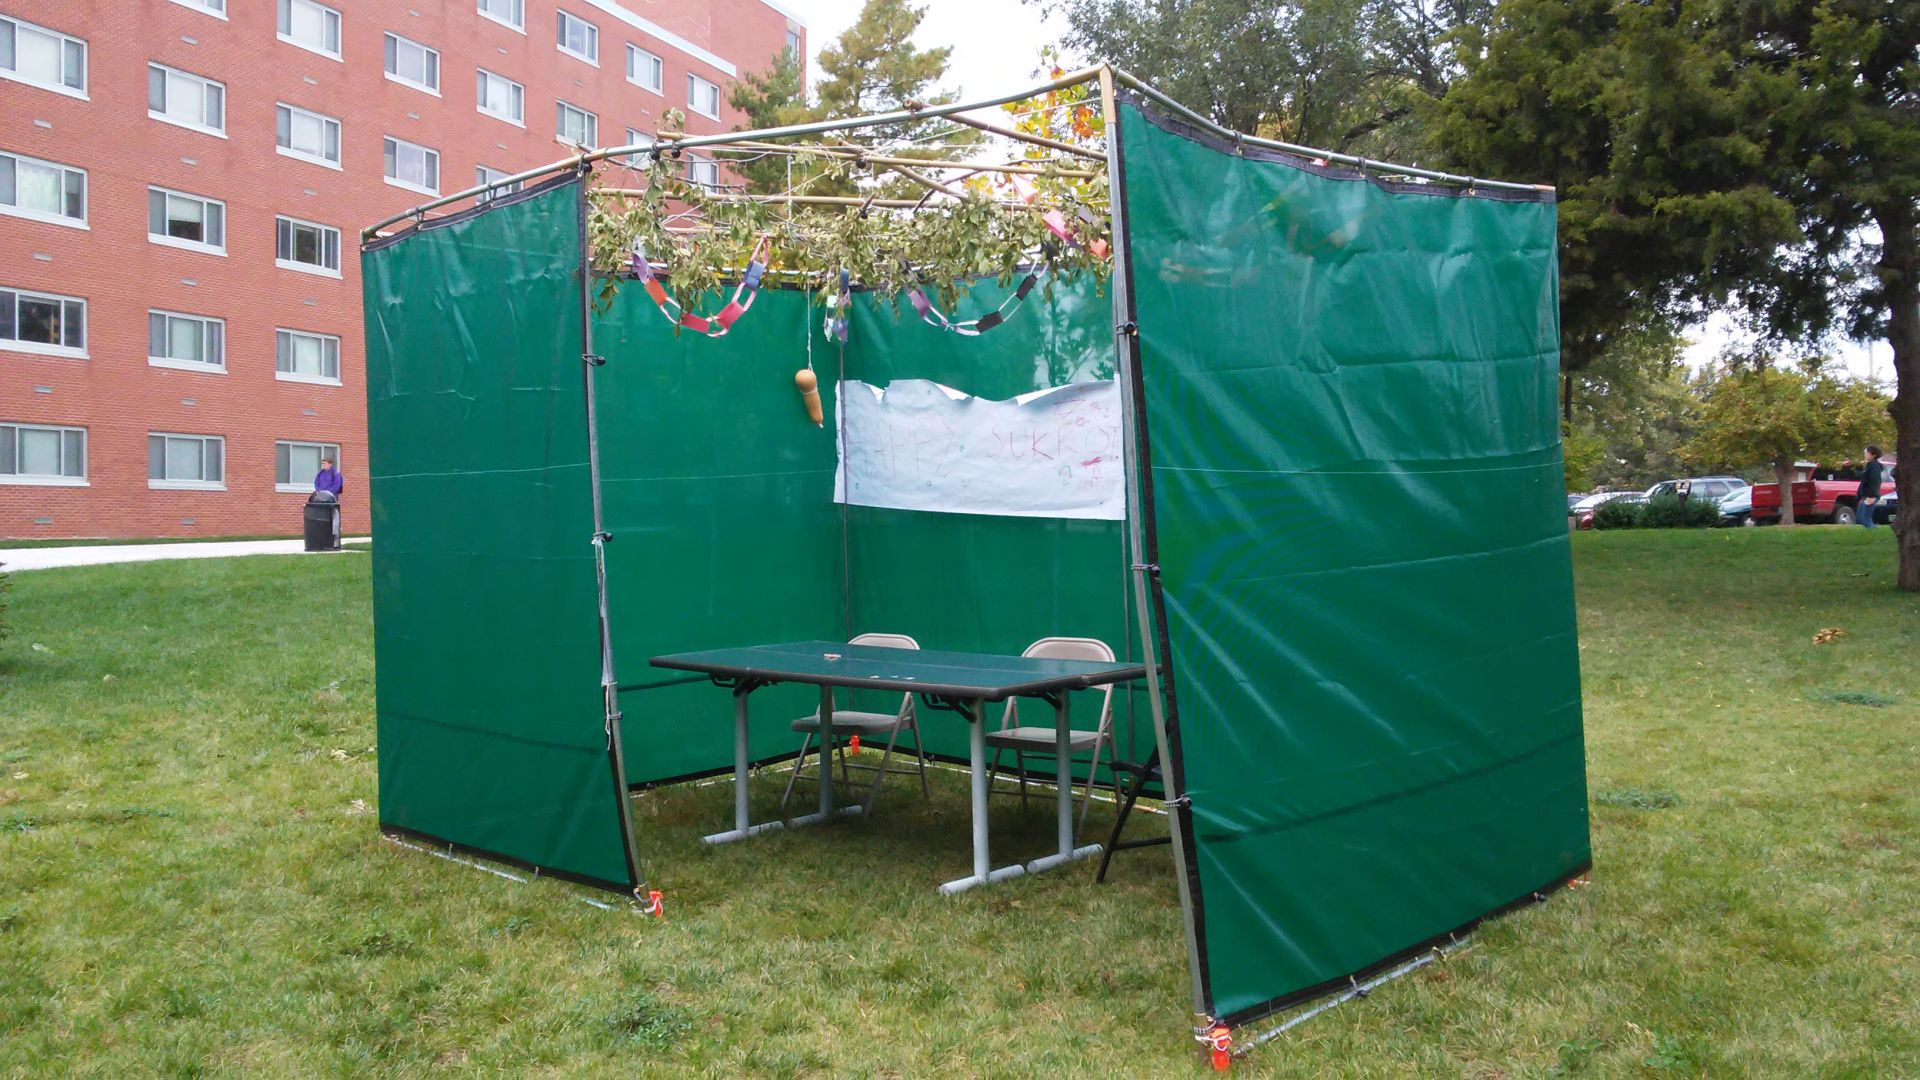 A sukkah a structure for a Jewish religious holiday was rebuilt Sunday near Kramer Dining Center after being destroyed this weekend. & Campus Jewish structure rebuilt | Crime | themercury.com